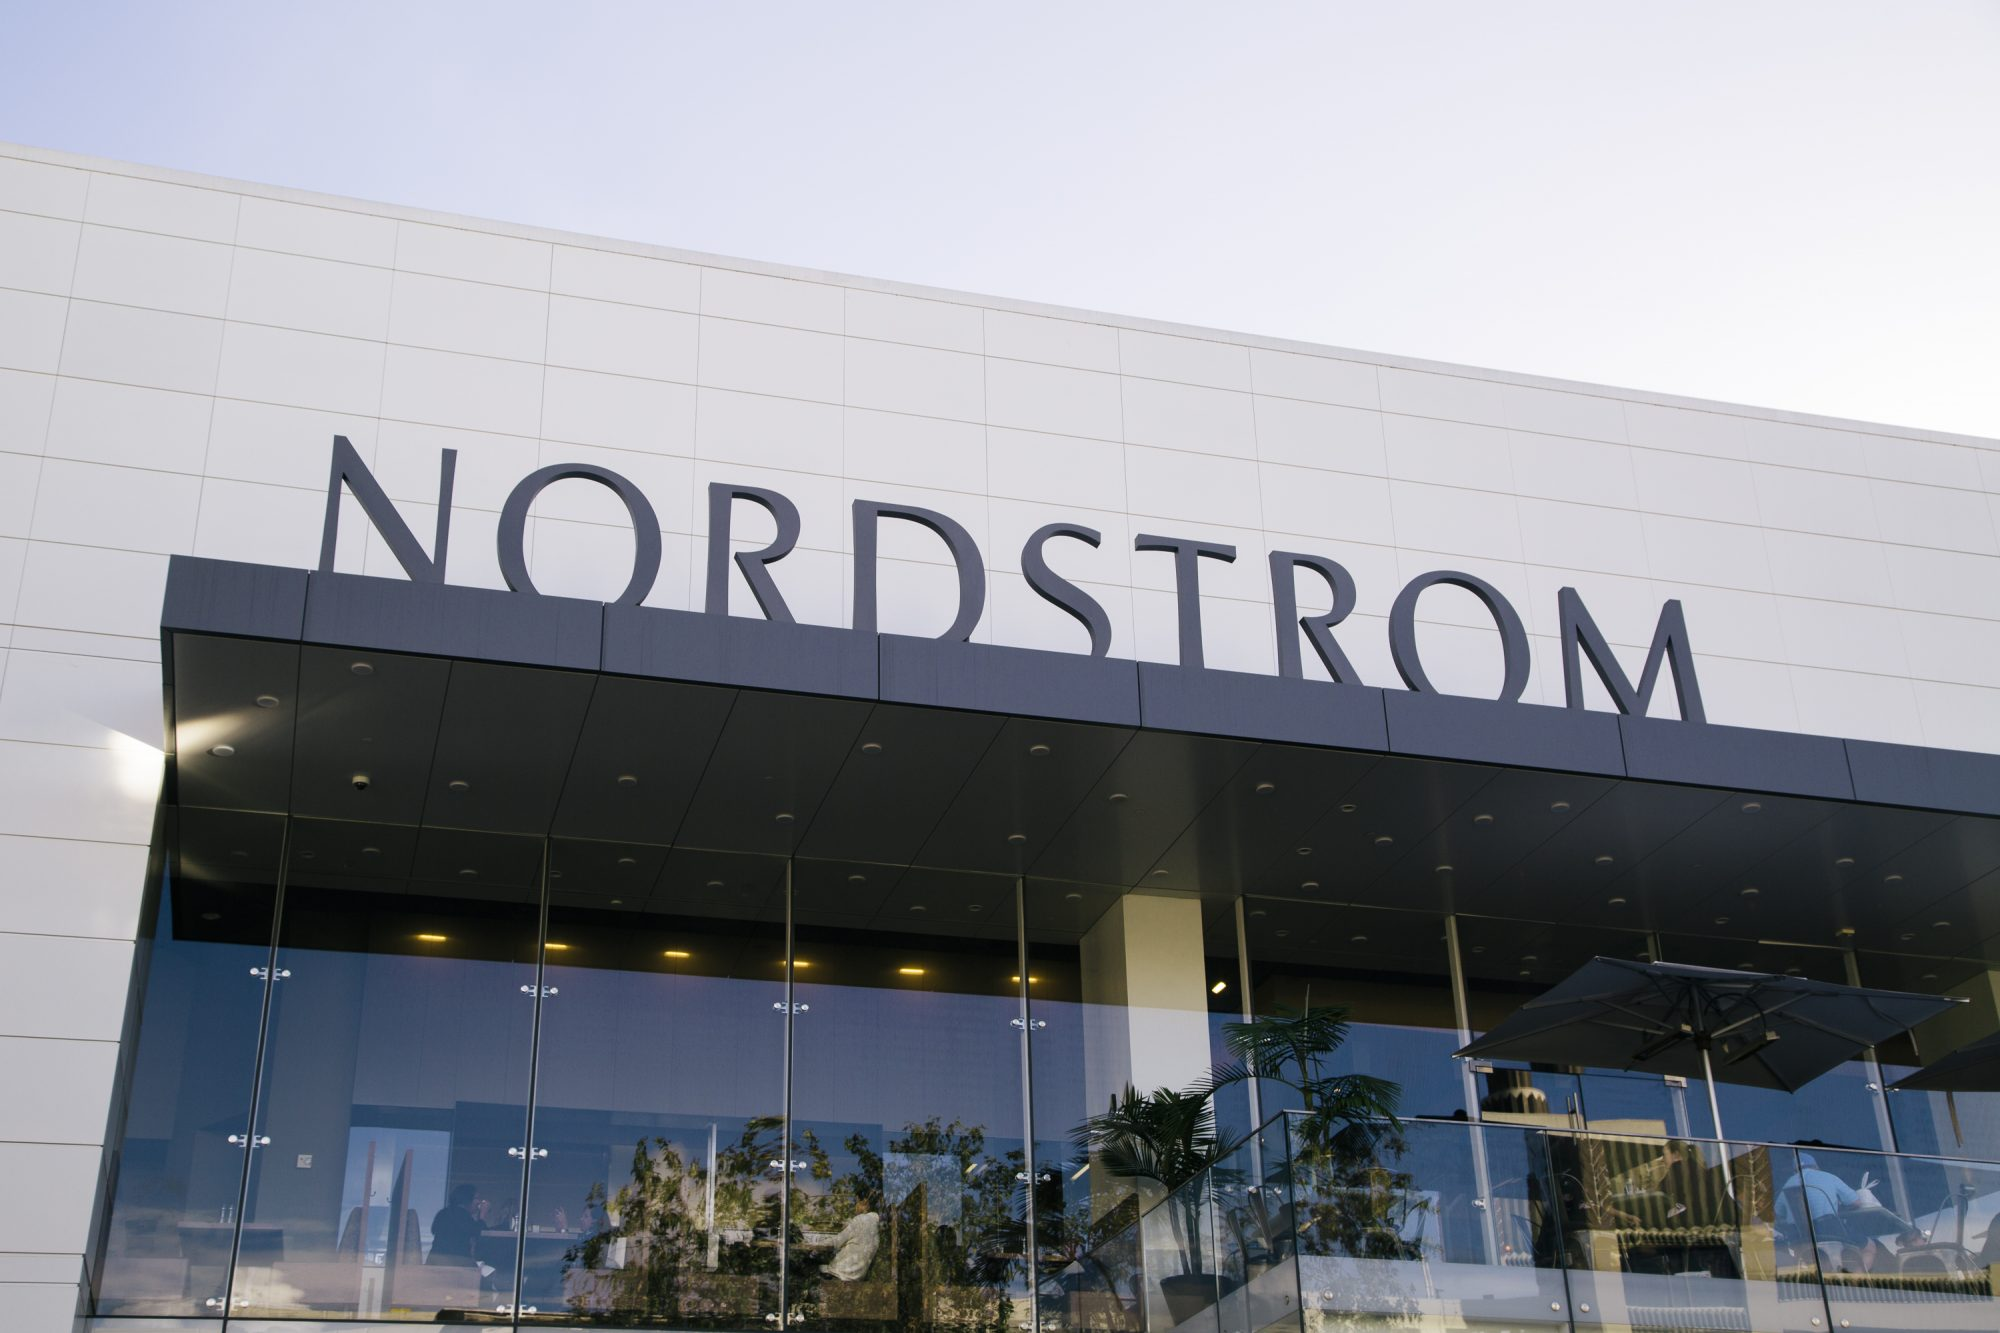 10 amazing deals during the huge nordstrom after christmas sale - Nordstrom After Christmas Sale